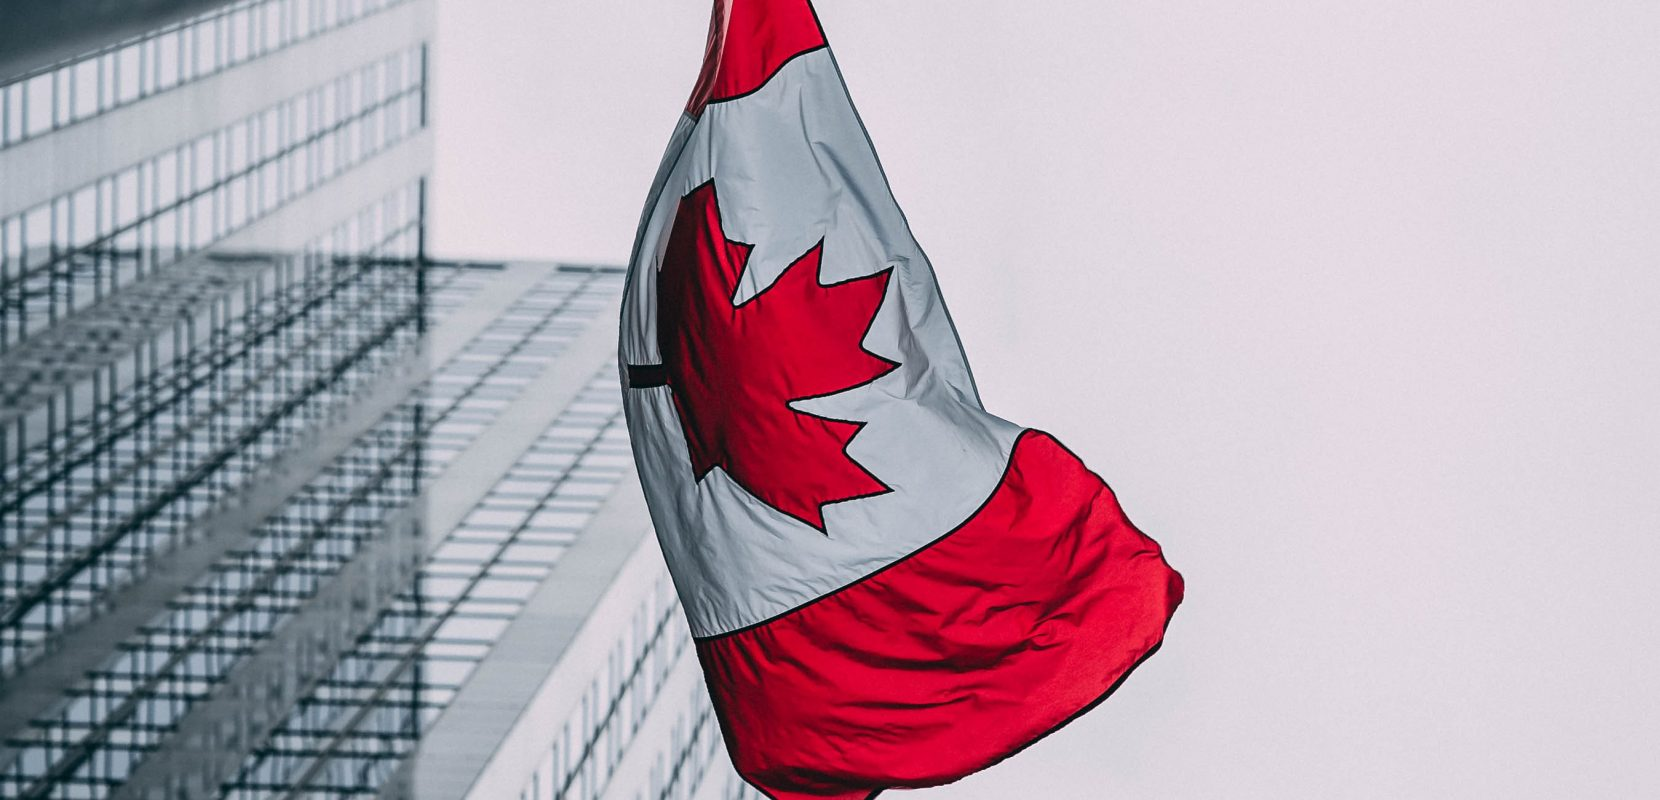 Canadian flag on a building